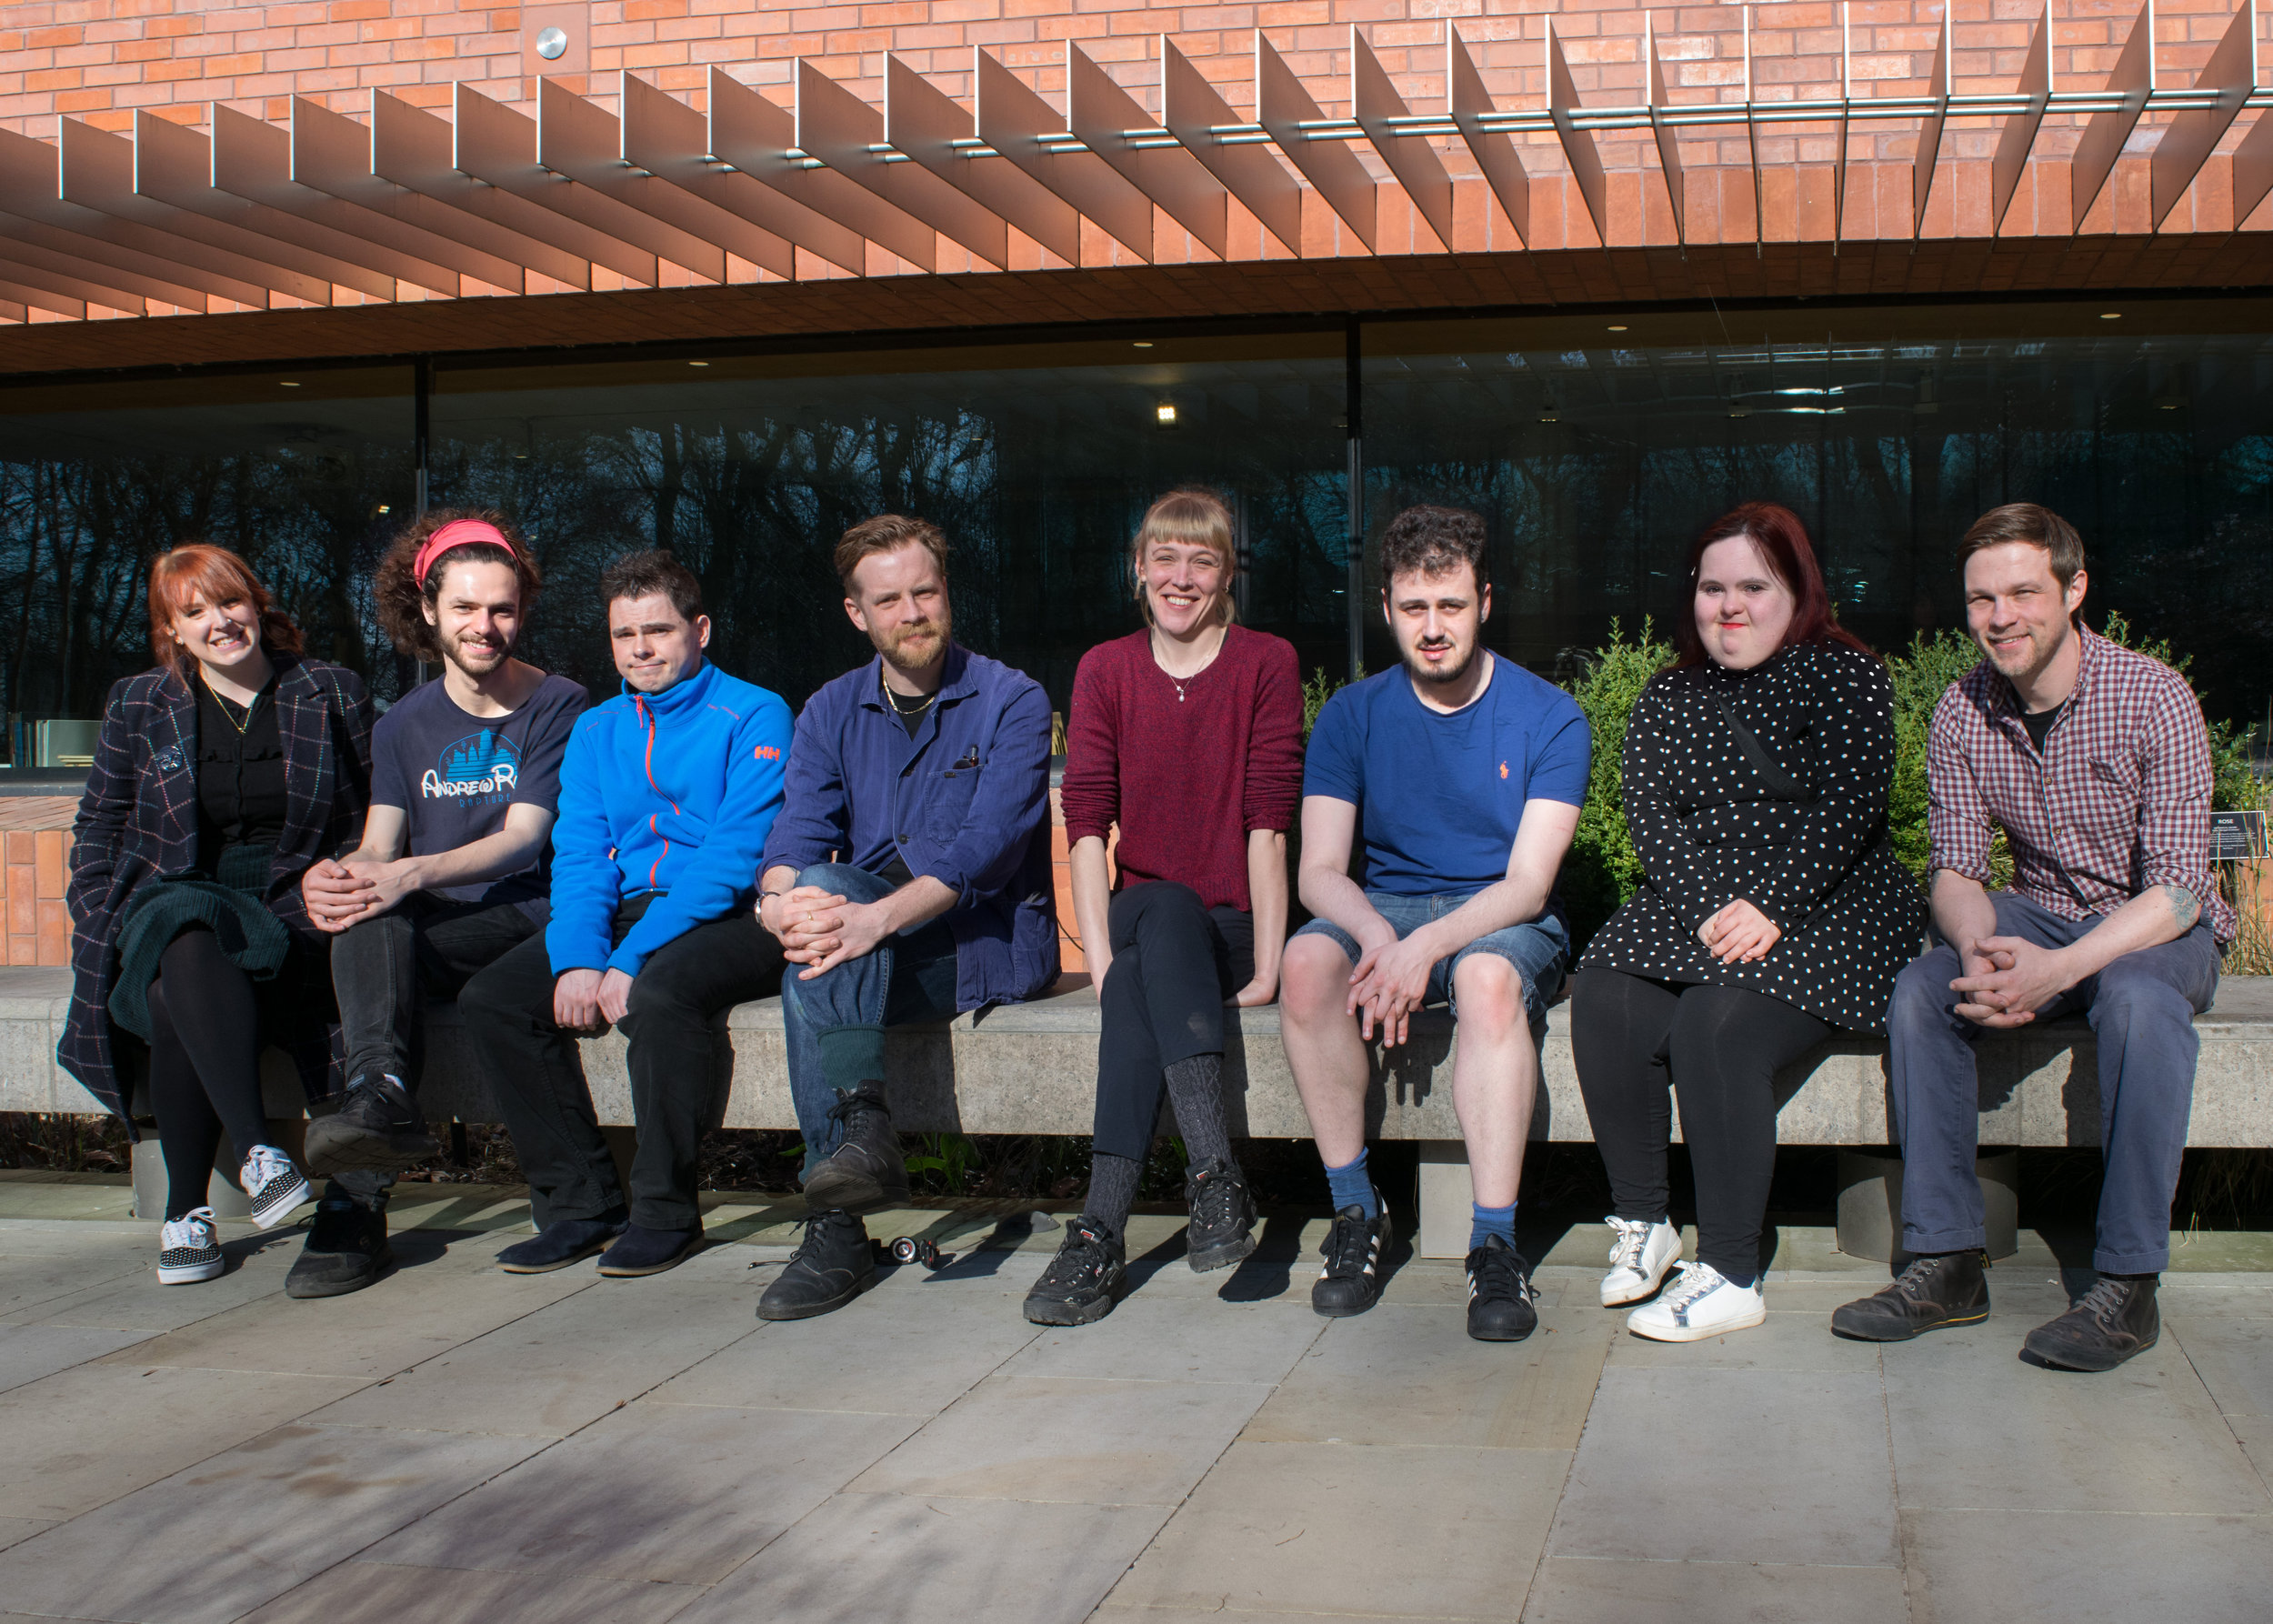 The six residency artists with myself on left, and facilitator James Pollitt on right. Photo: James John Lynch